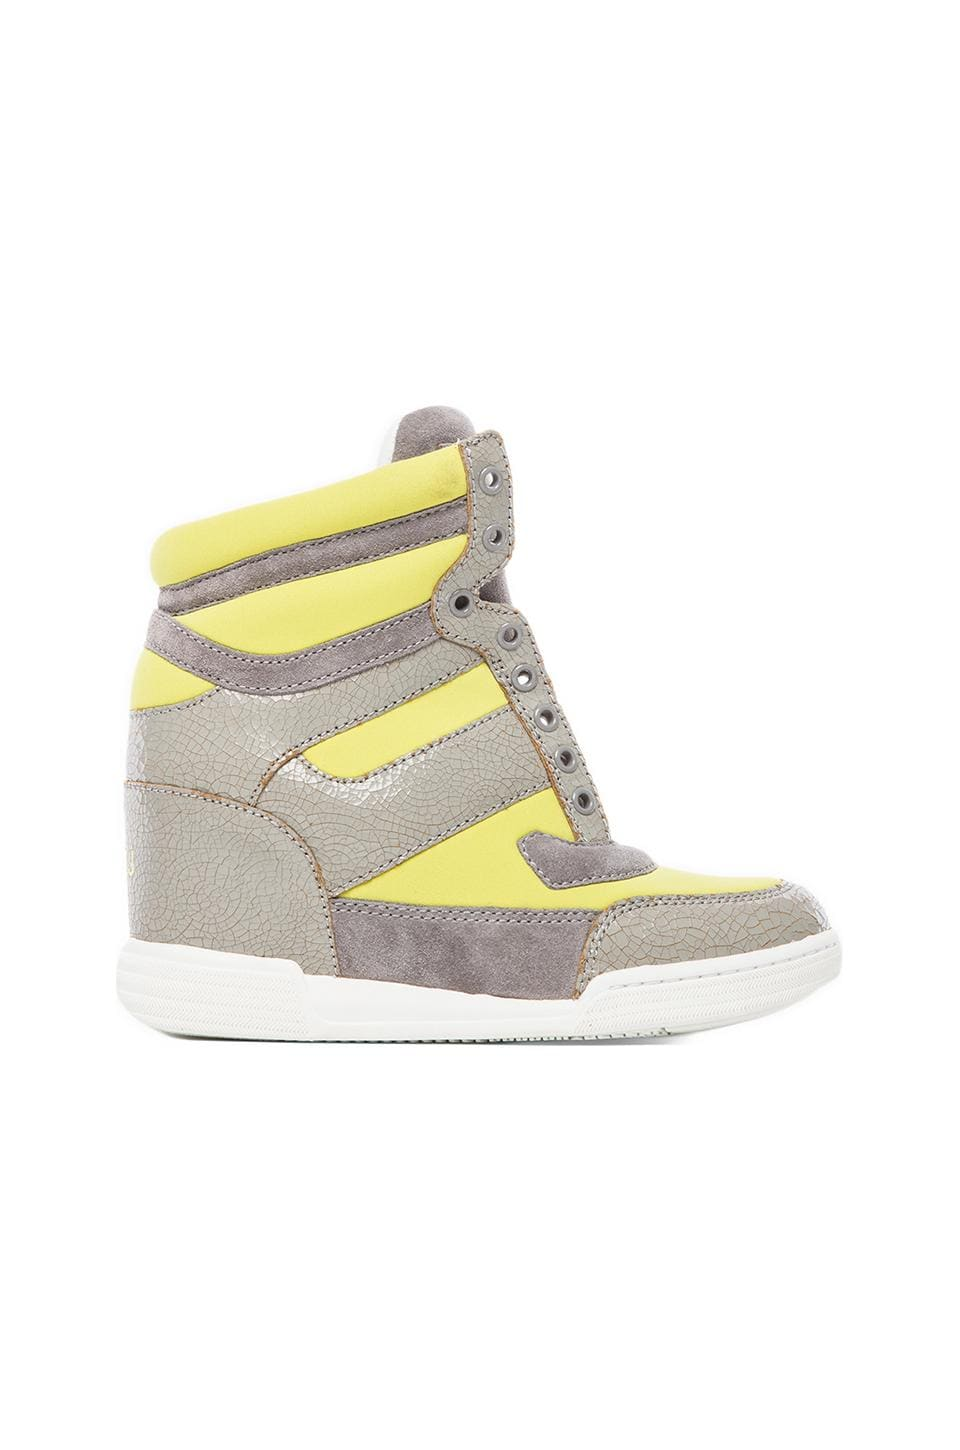 Marc by Marc Jacobs Sneaker Wedge in Yellow & Grey